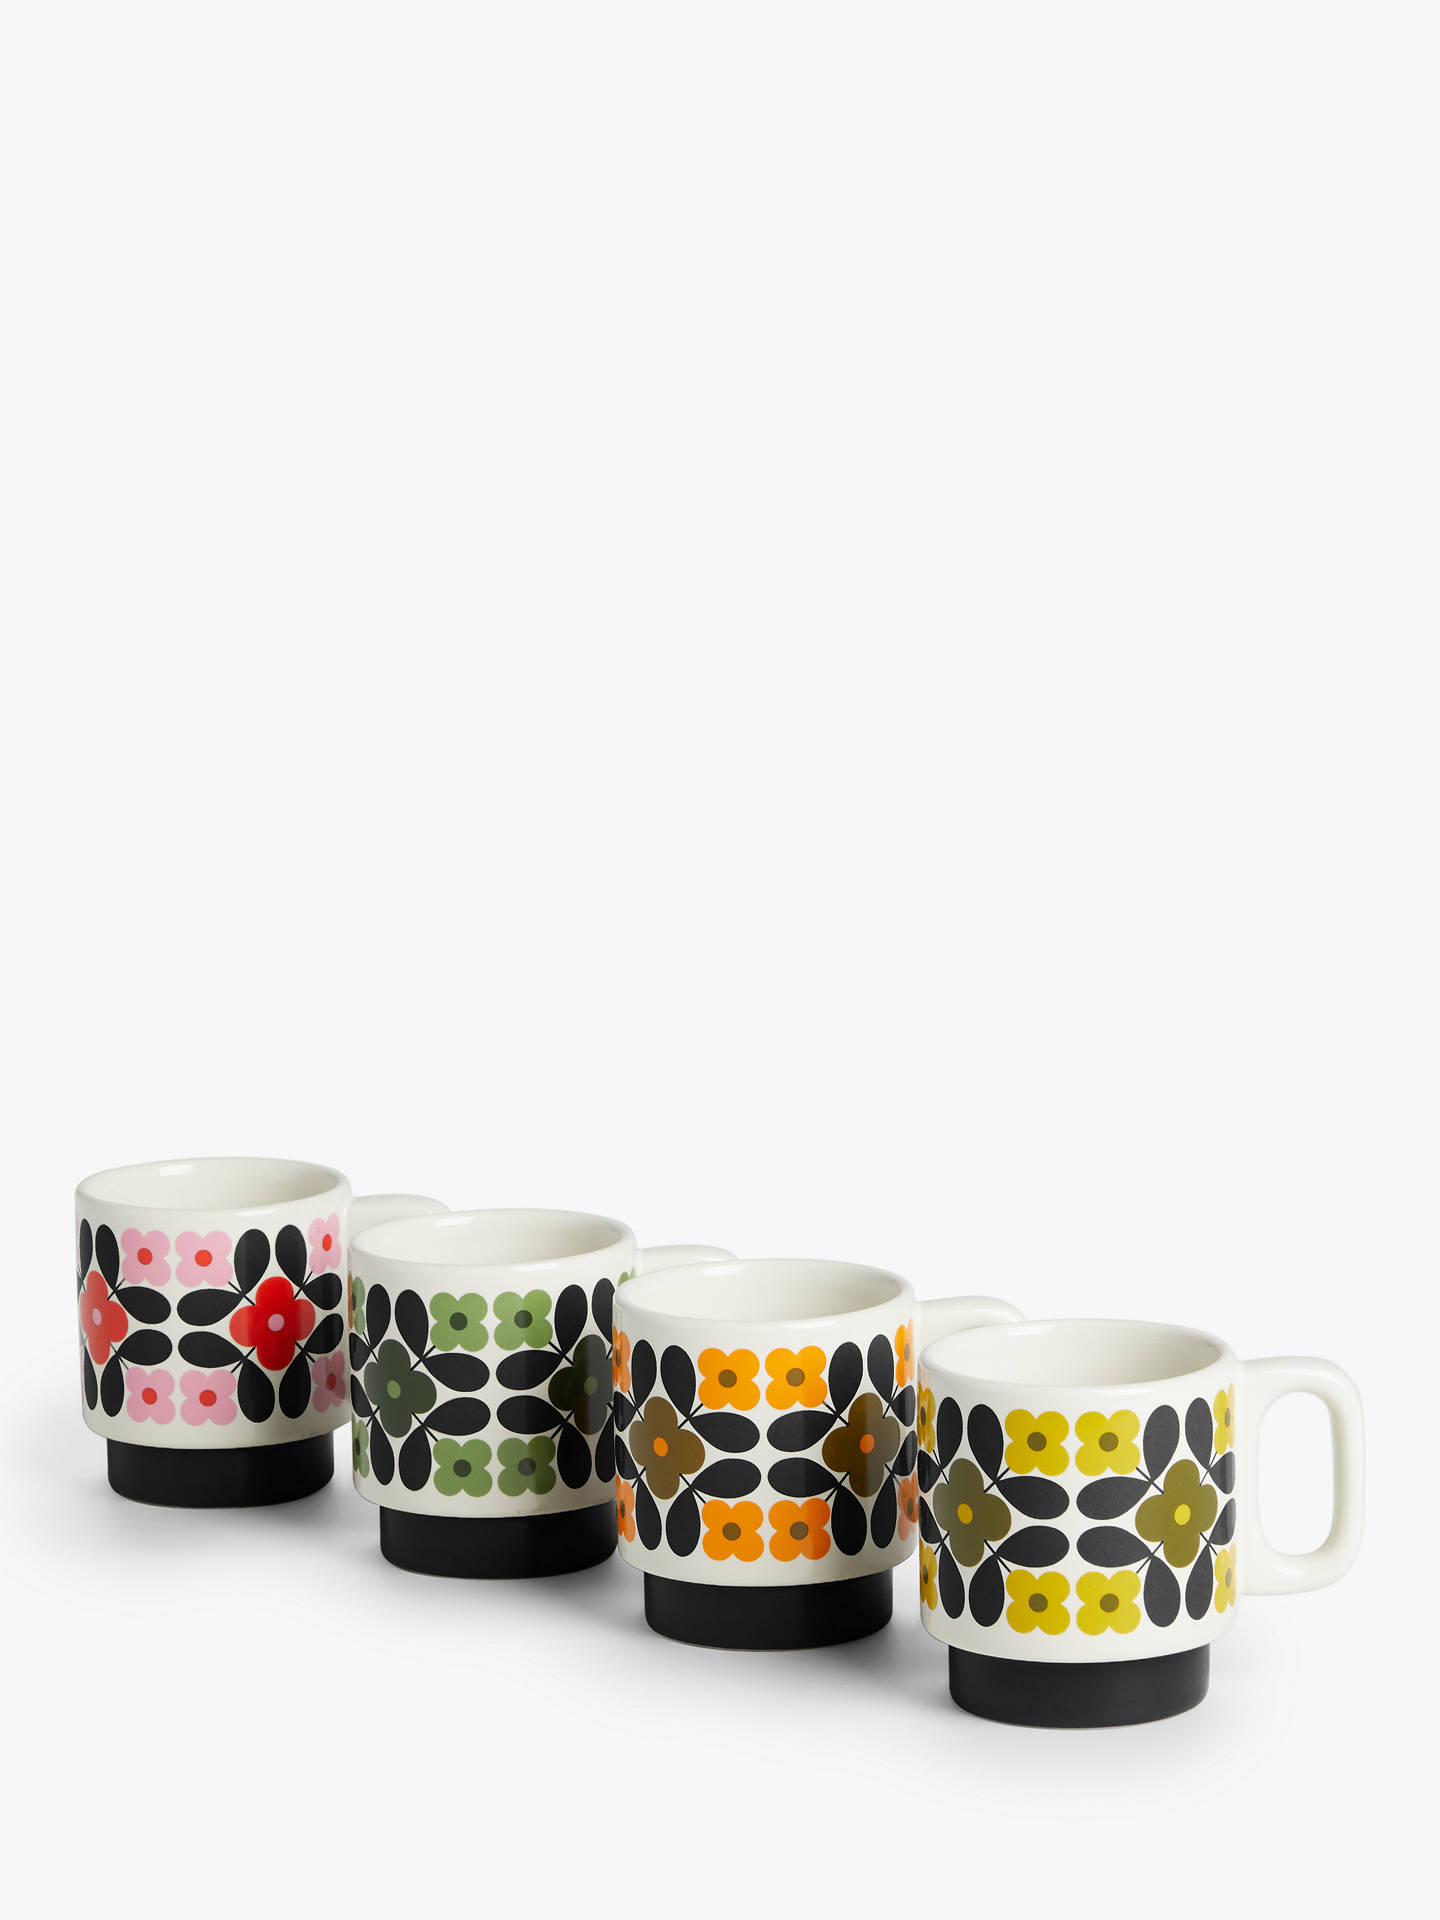 John Lewis Stackable Espresso Cups & Stand, Set of 4, 100ml